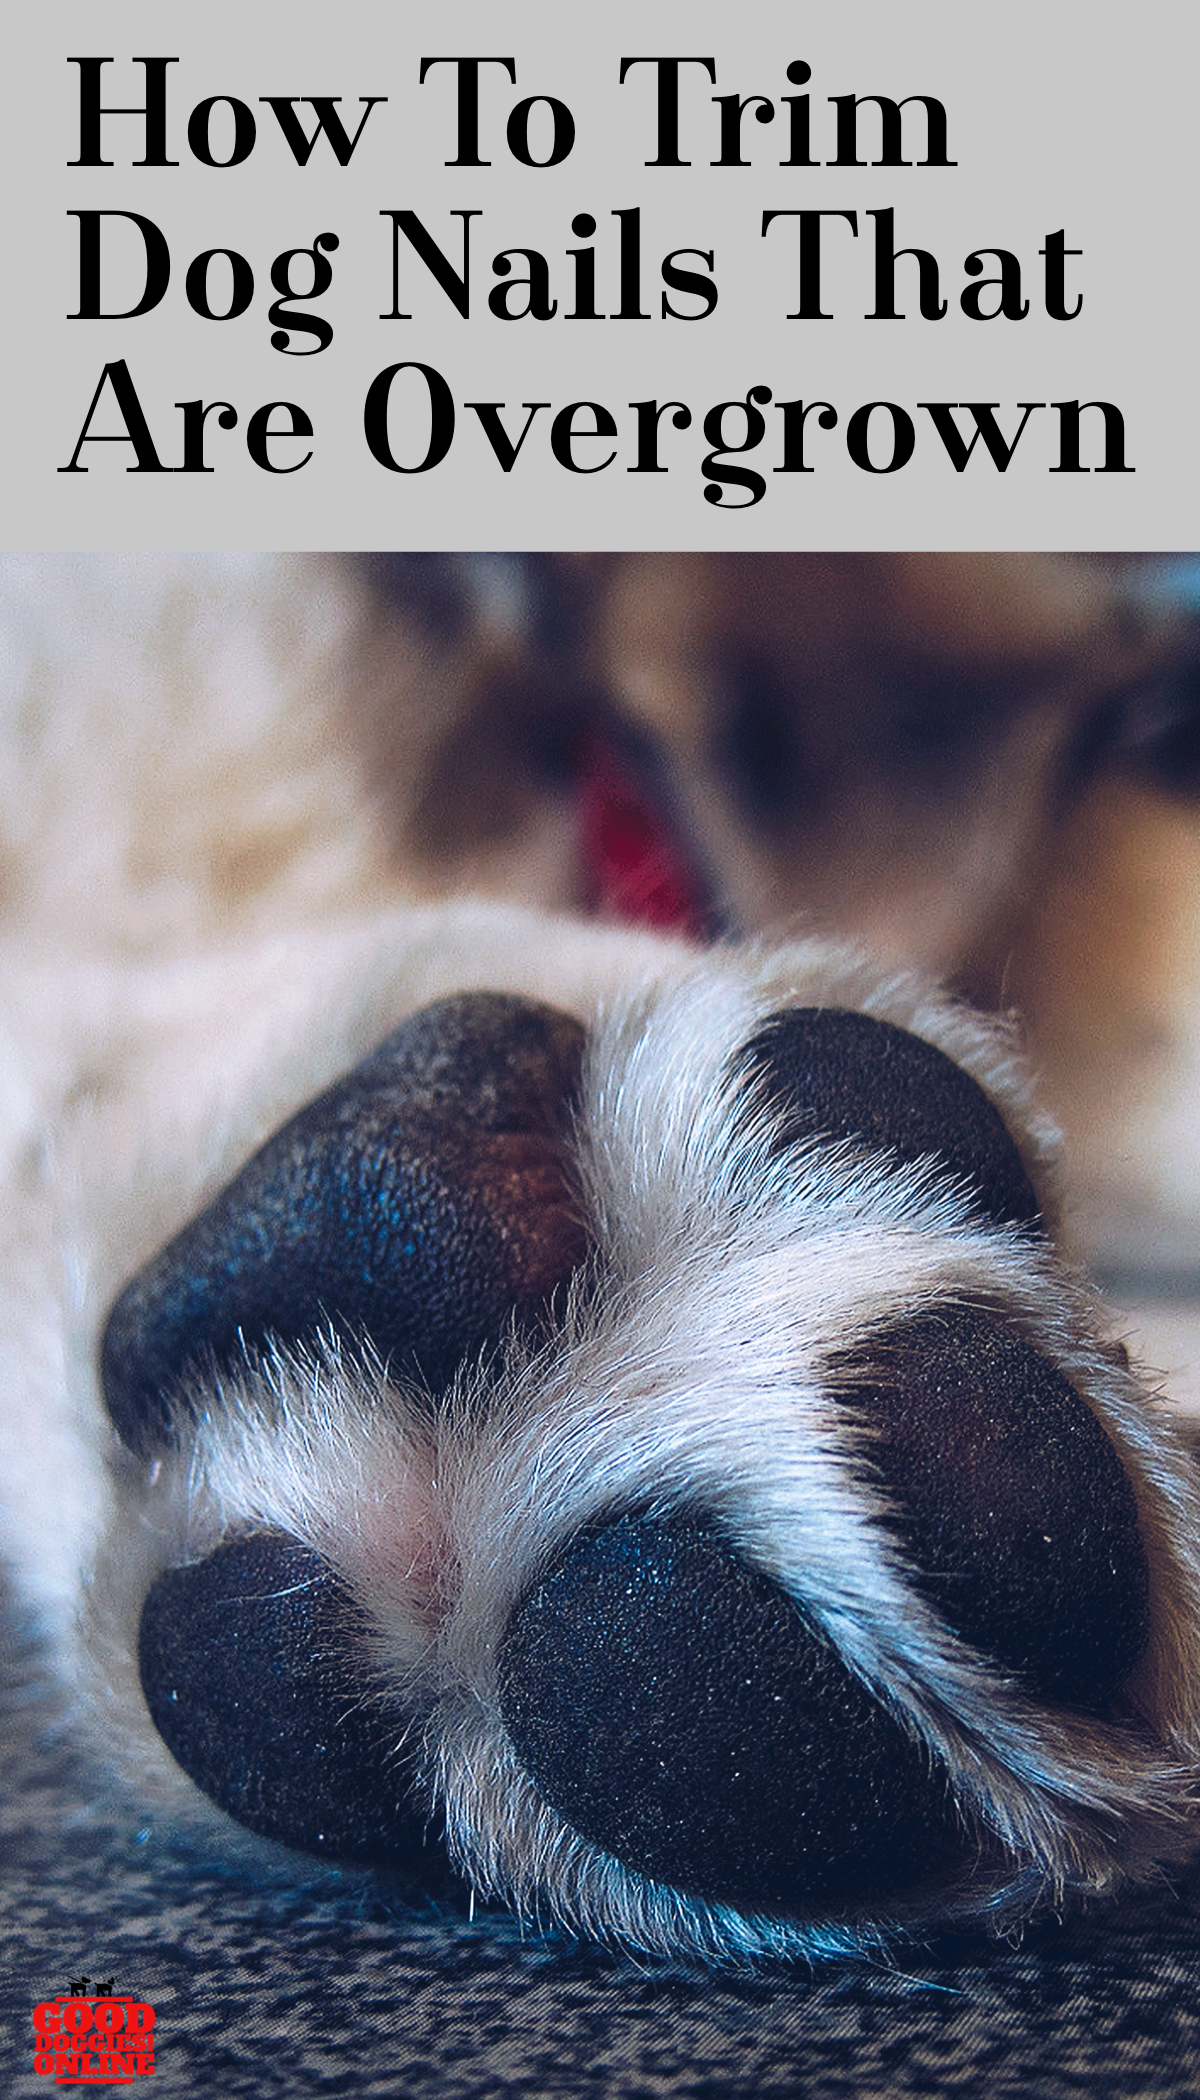 How To Trim Dog Nails That Are Overgrown Trimming Dog Nails Dog Nails Dog Remedies